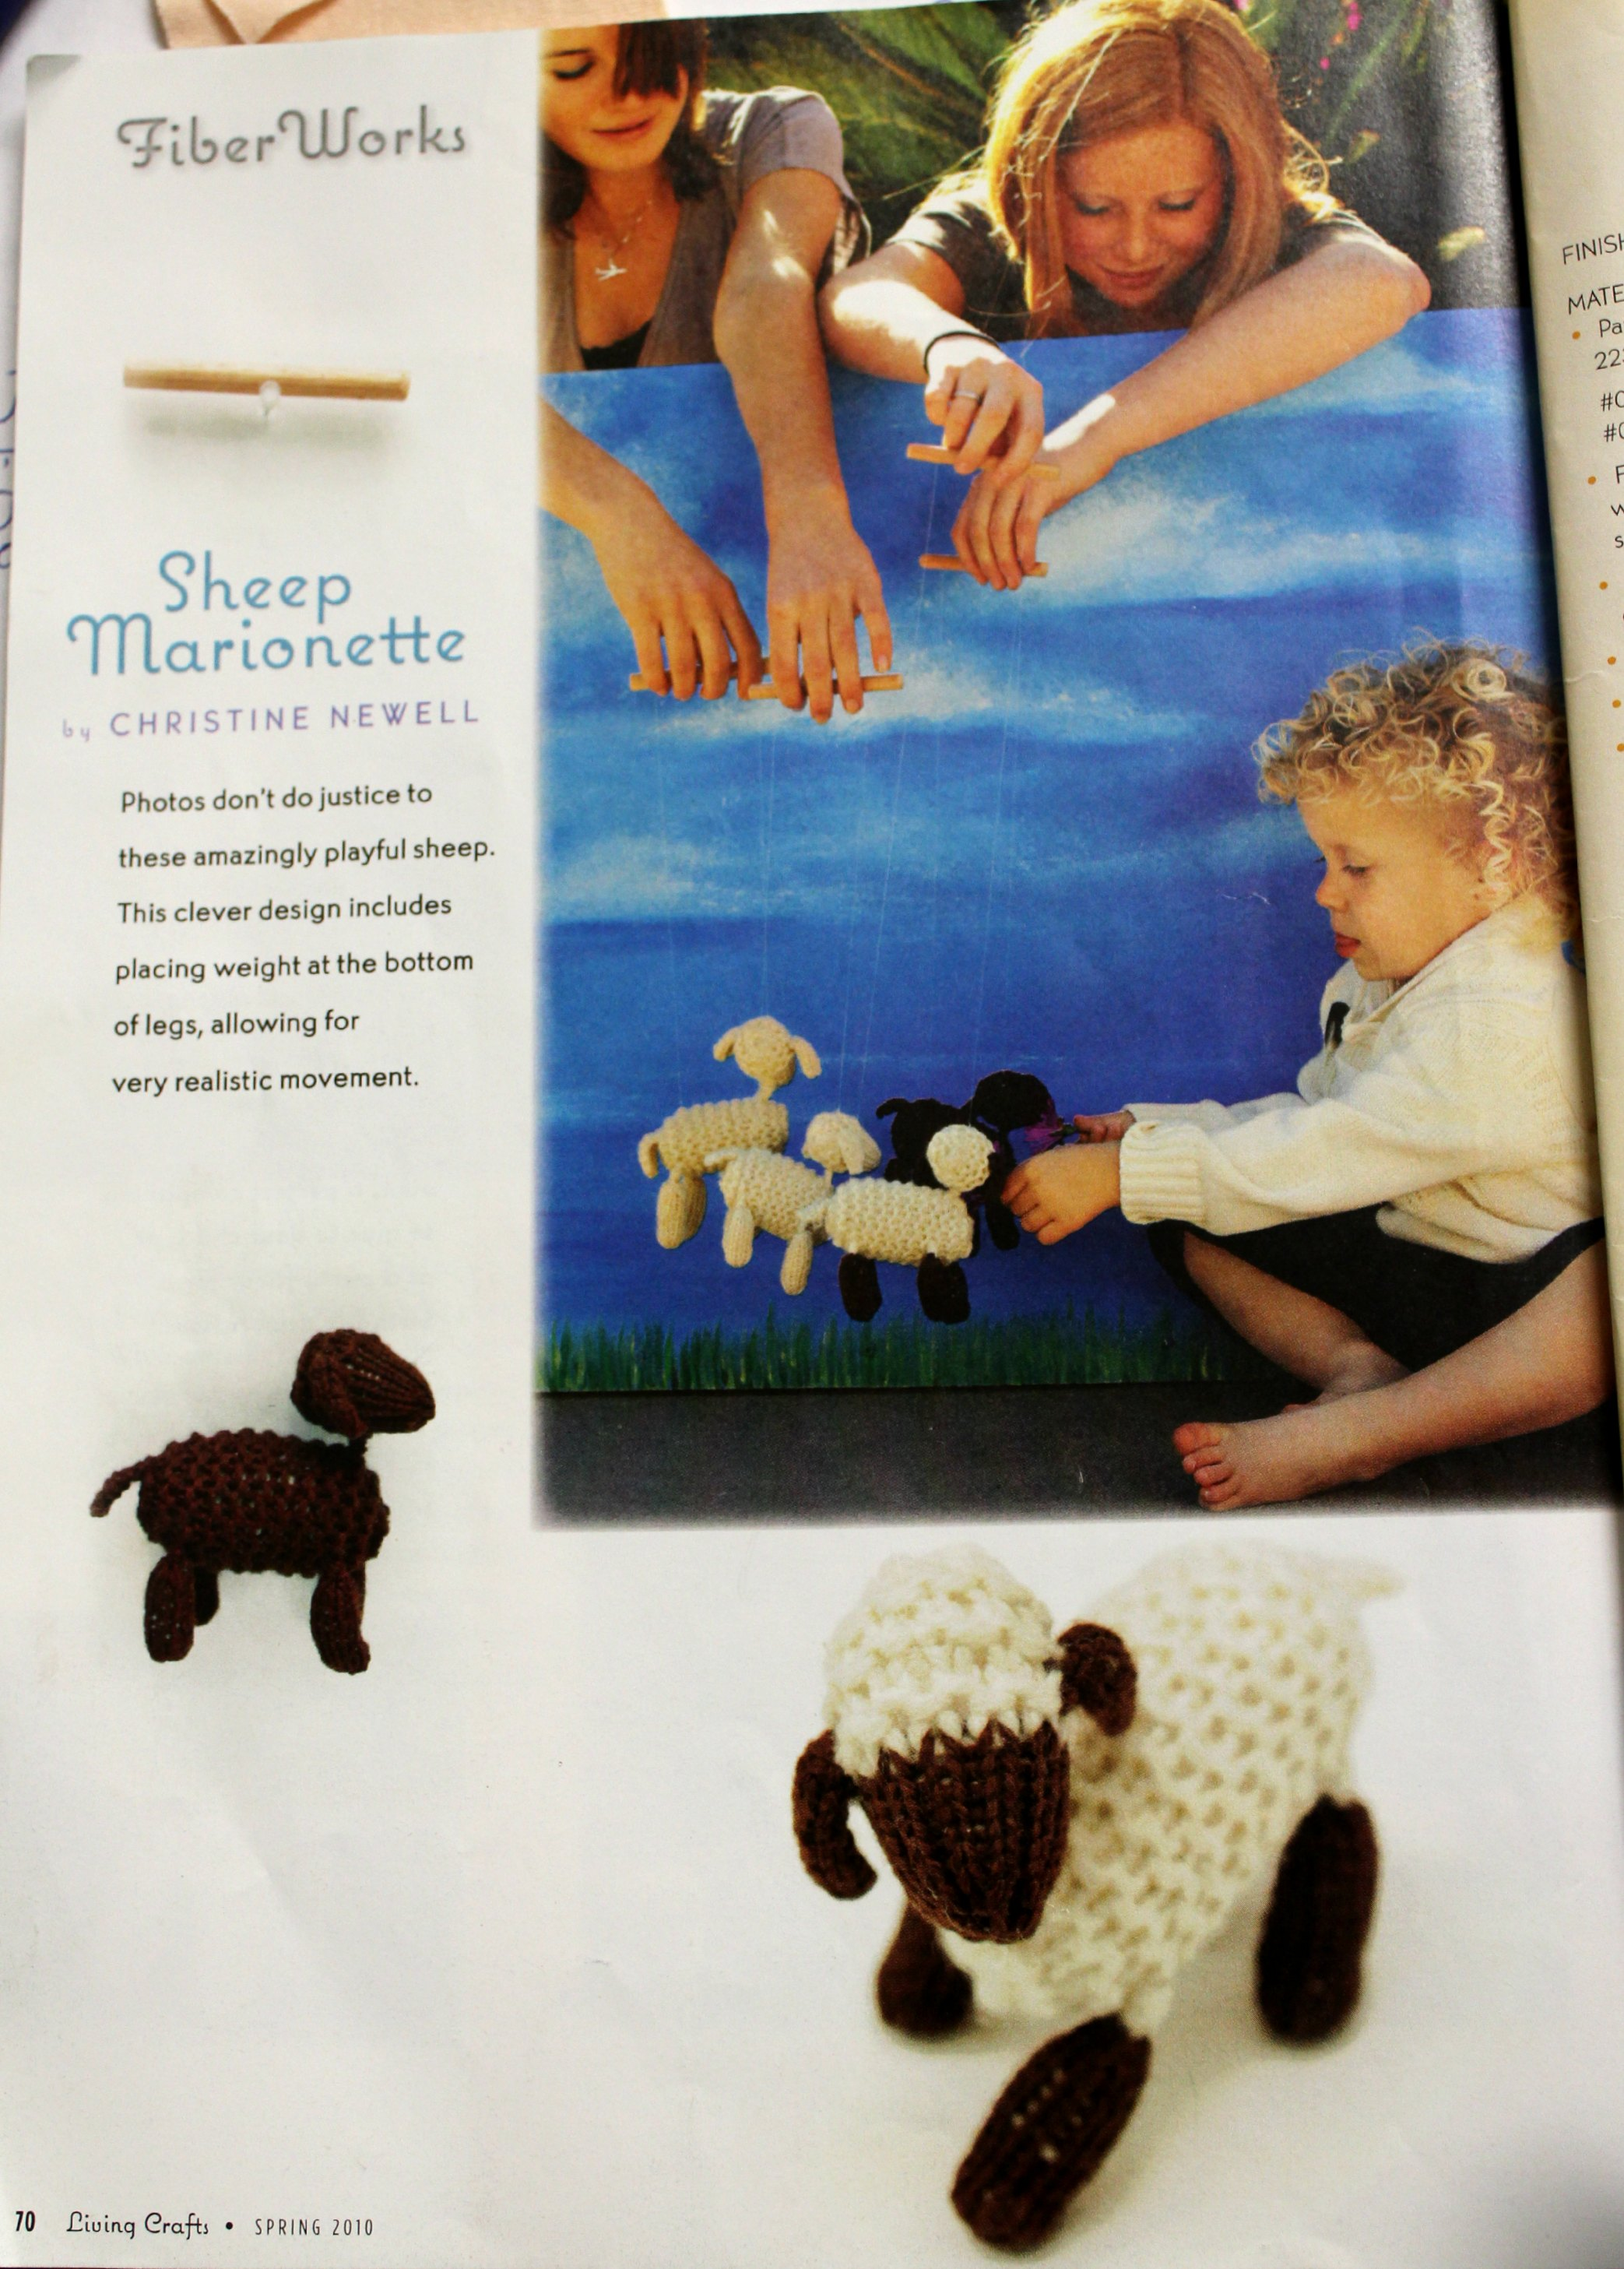 130116 Spring 2010 Living Crafts Magazine. Christine Newell's Sheep Marionette Tutorial. Fiber Works first page